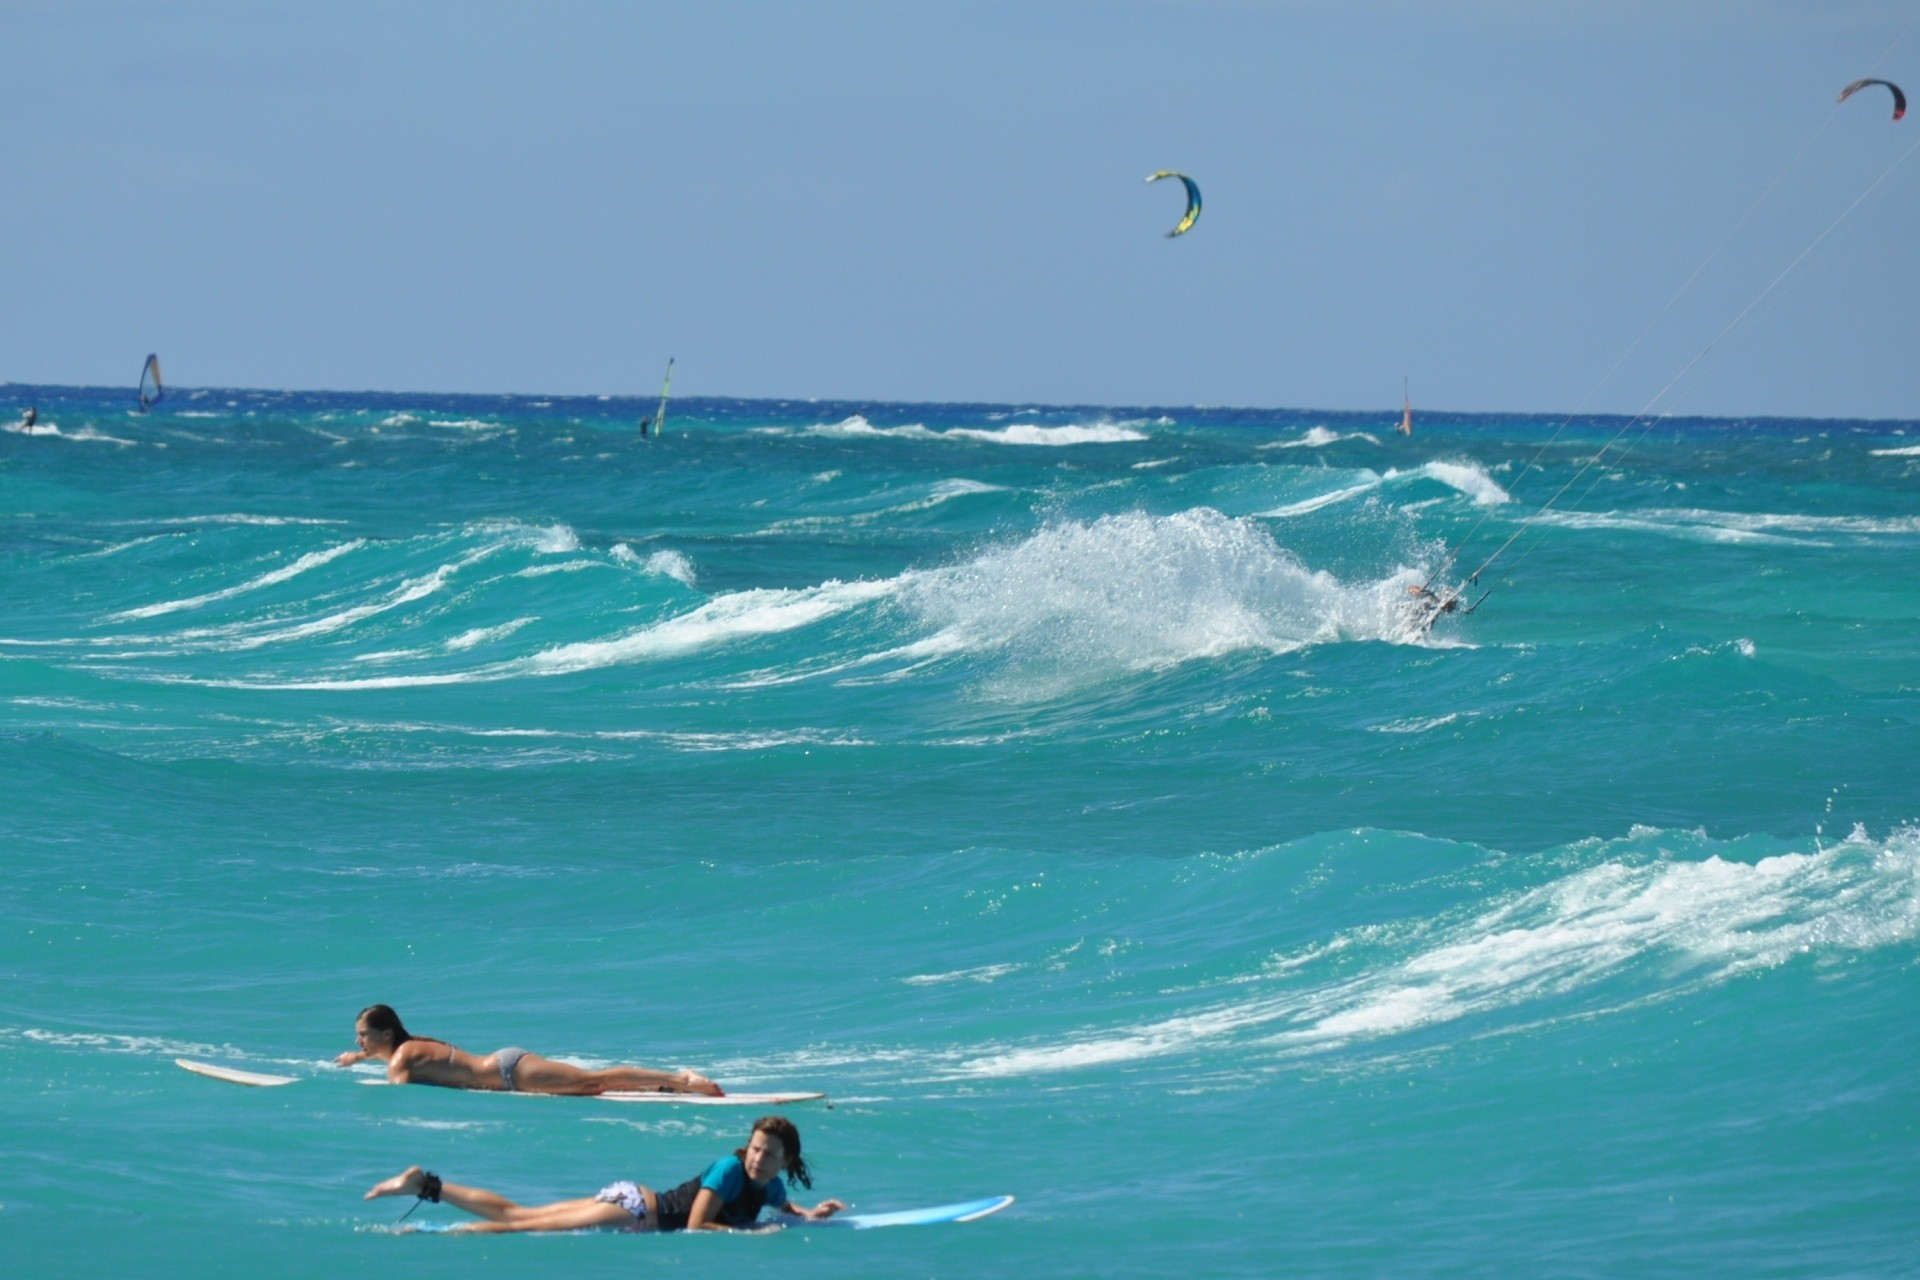 user283276's photo of Surfer's Point - Barbados